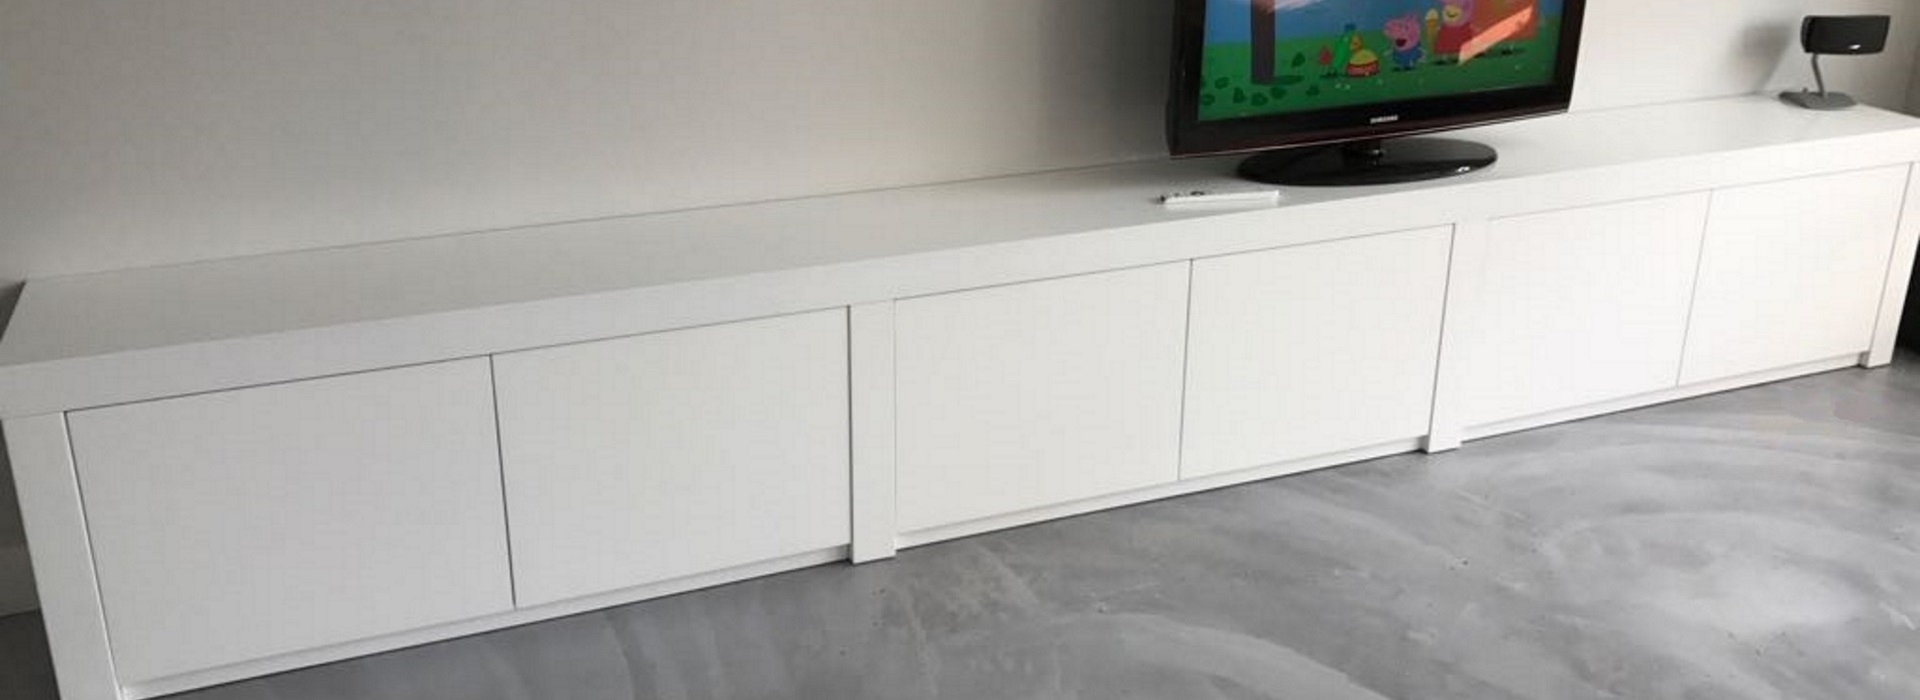 Inspiration about Meubelspuiterij Alkmaar Regarding Most Up To Date Neeja 3 Door Sideboards (#2 of 20)